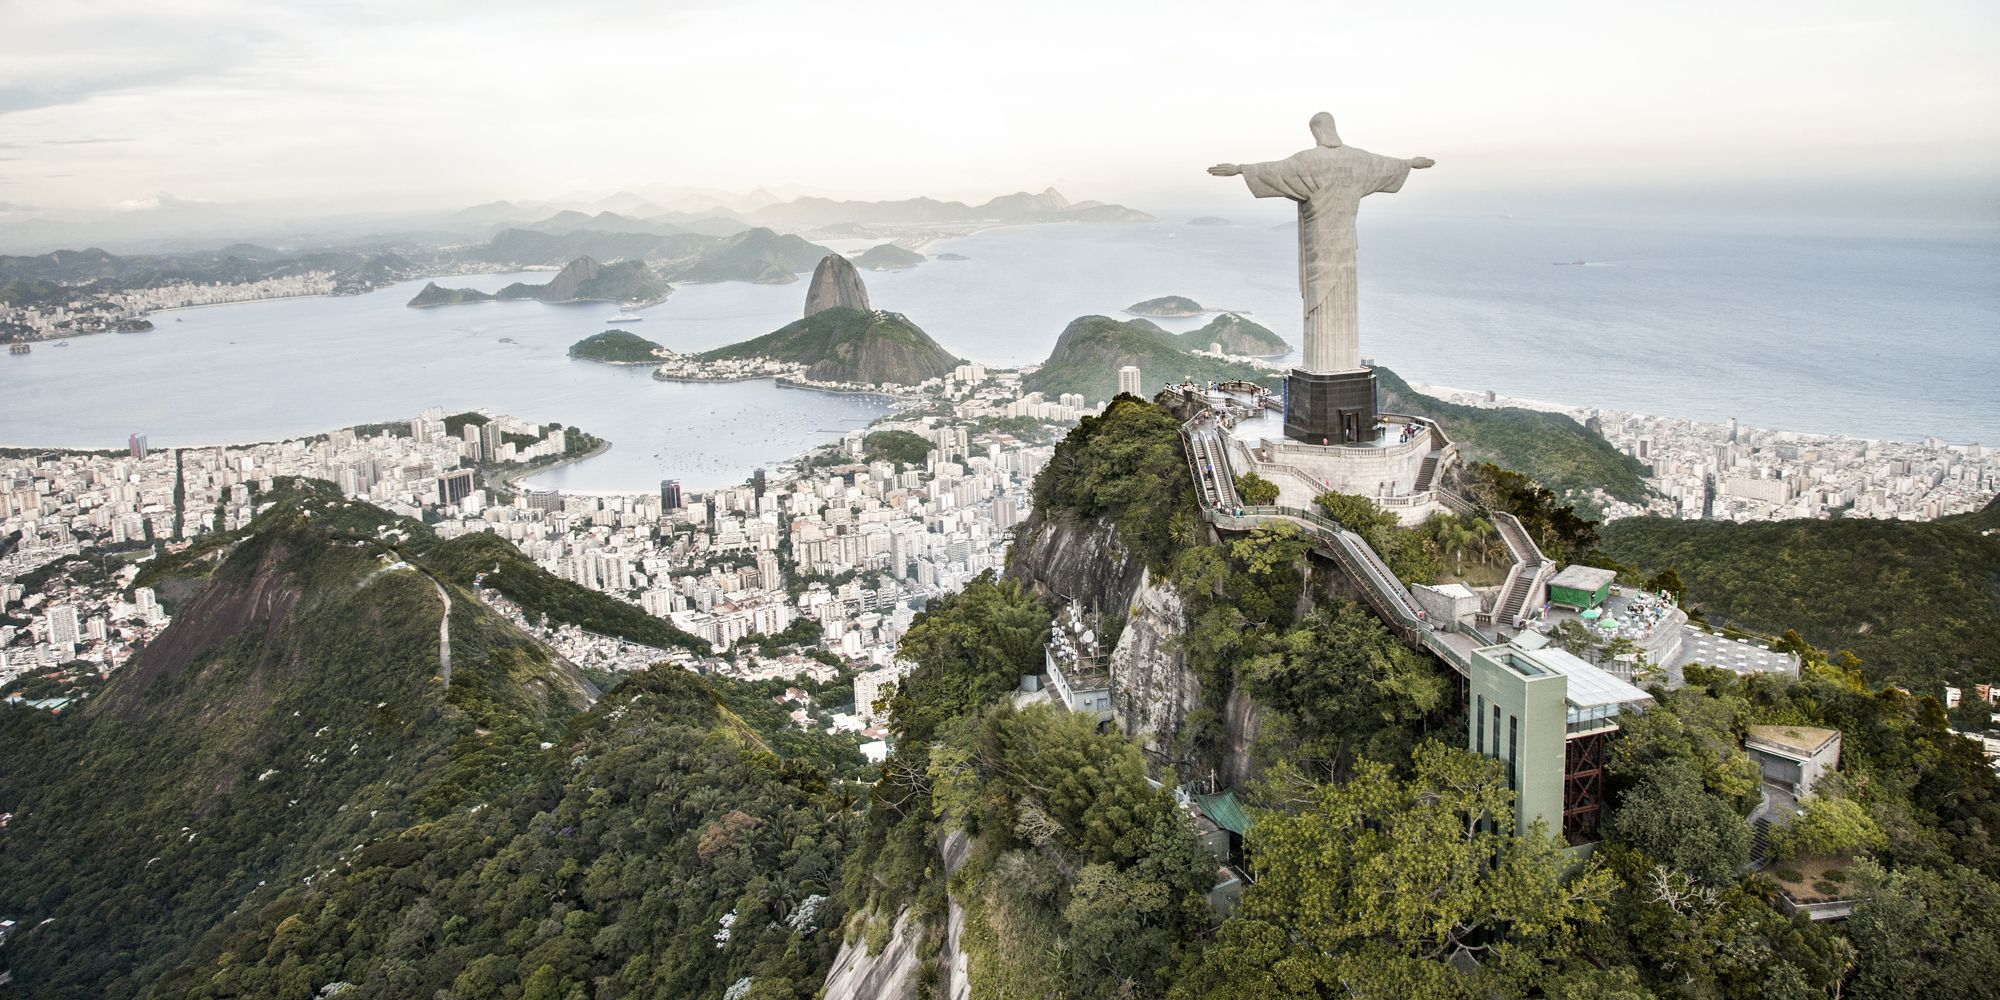 19 Places in Brazil That Are Just Begging to Be Instagrammed